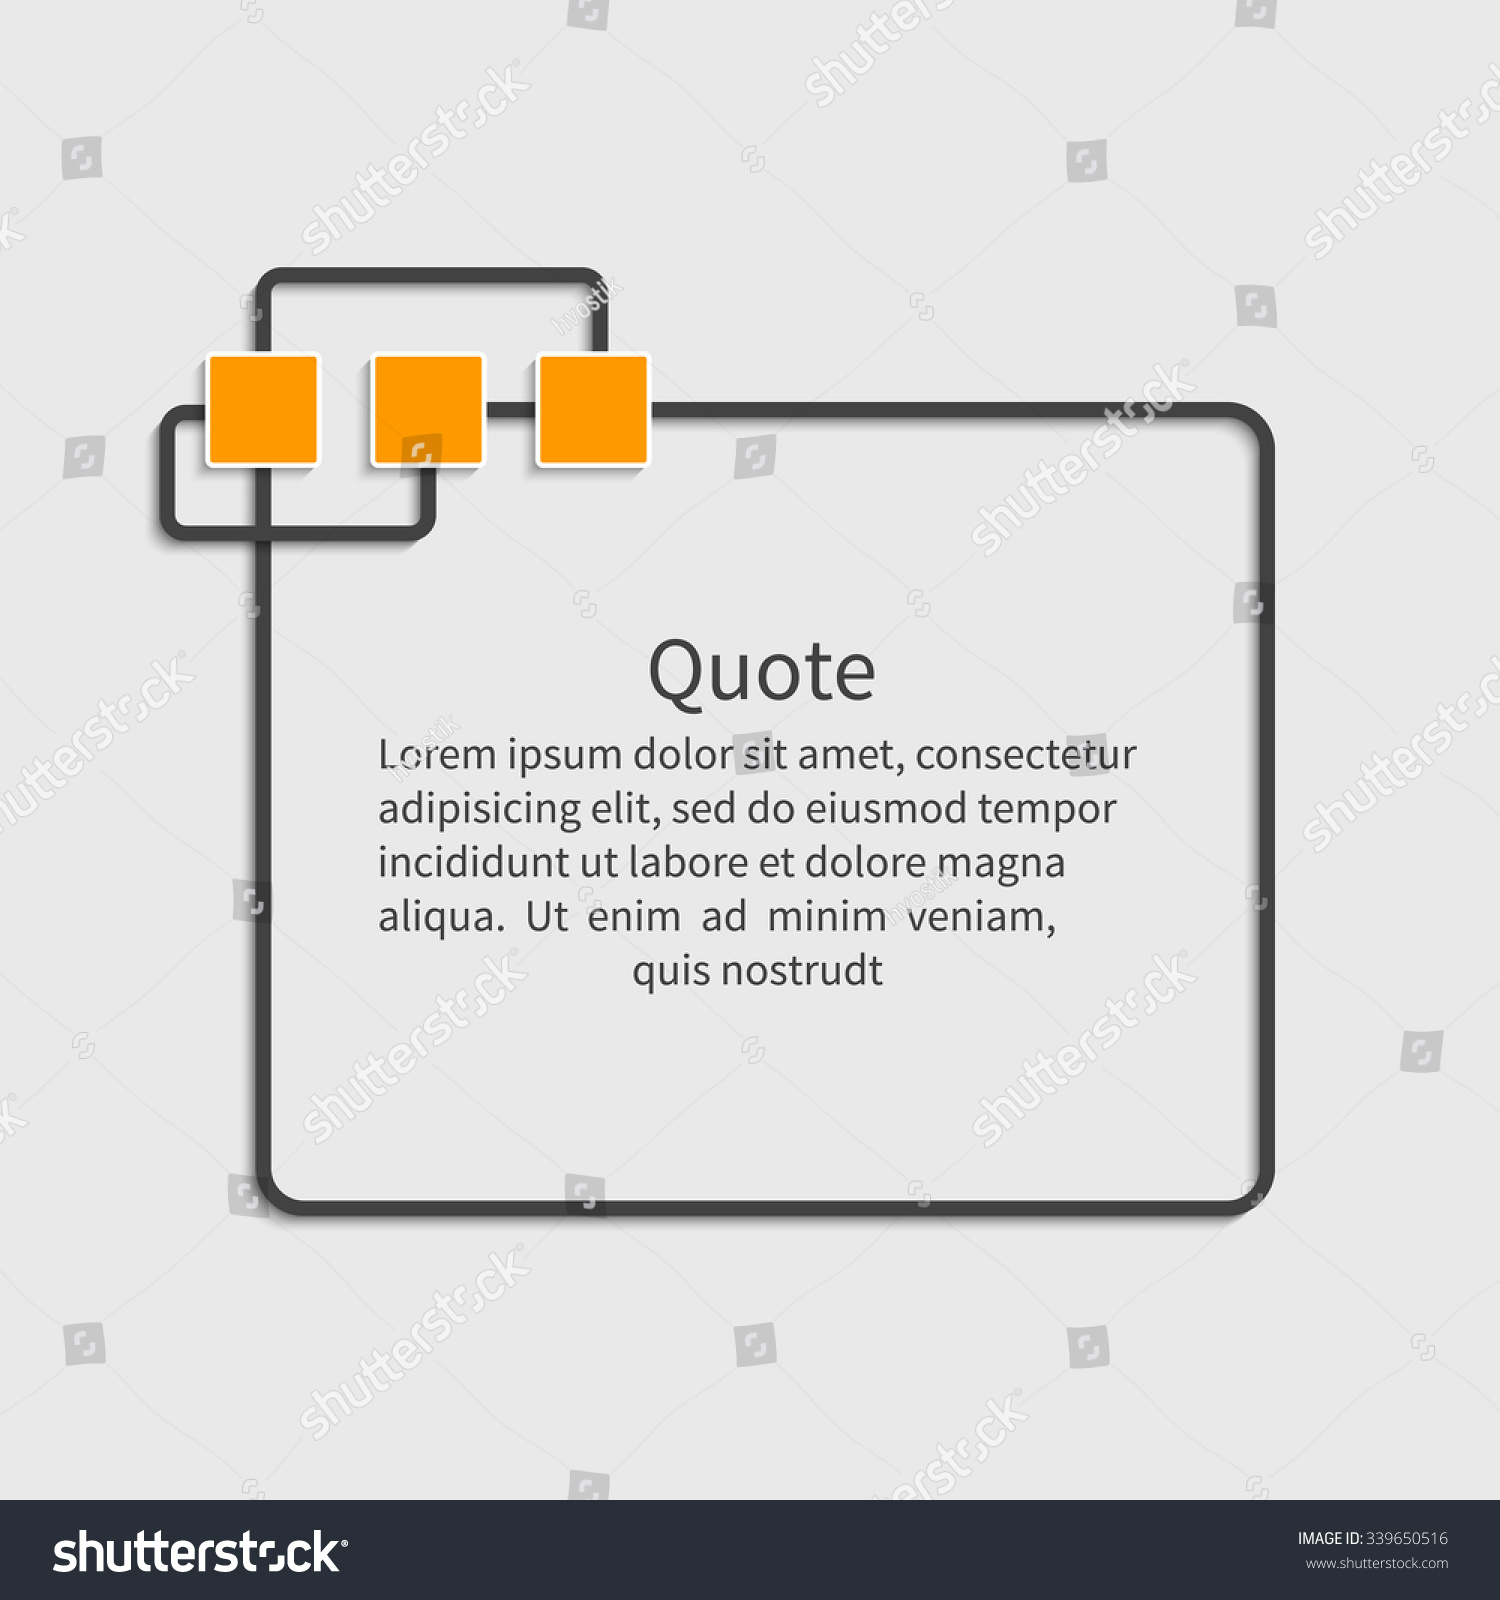 quote blank template dialog box design stock vector  quote blank template dialog box design element for message information comment